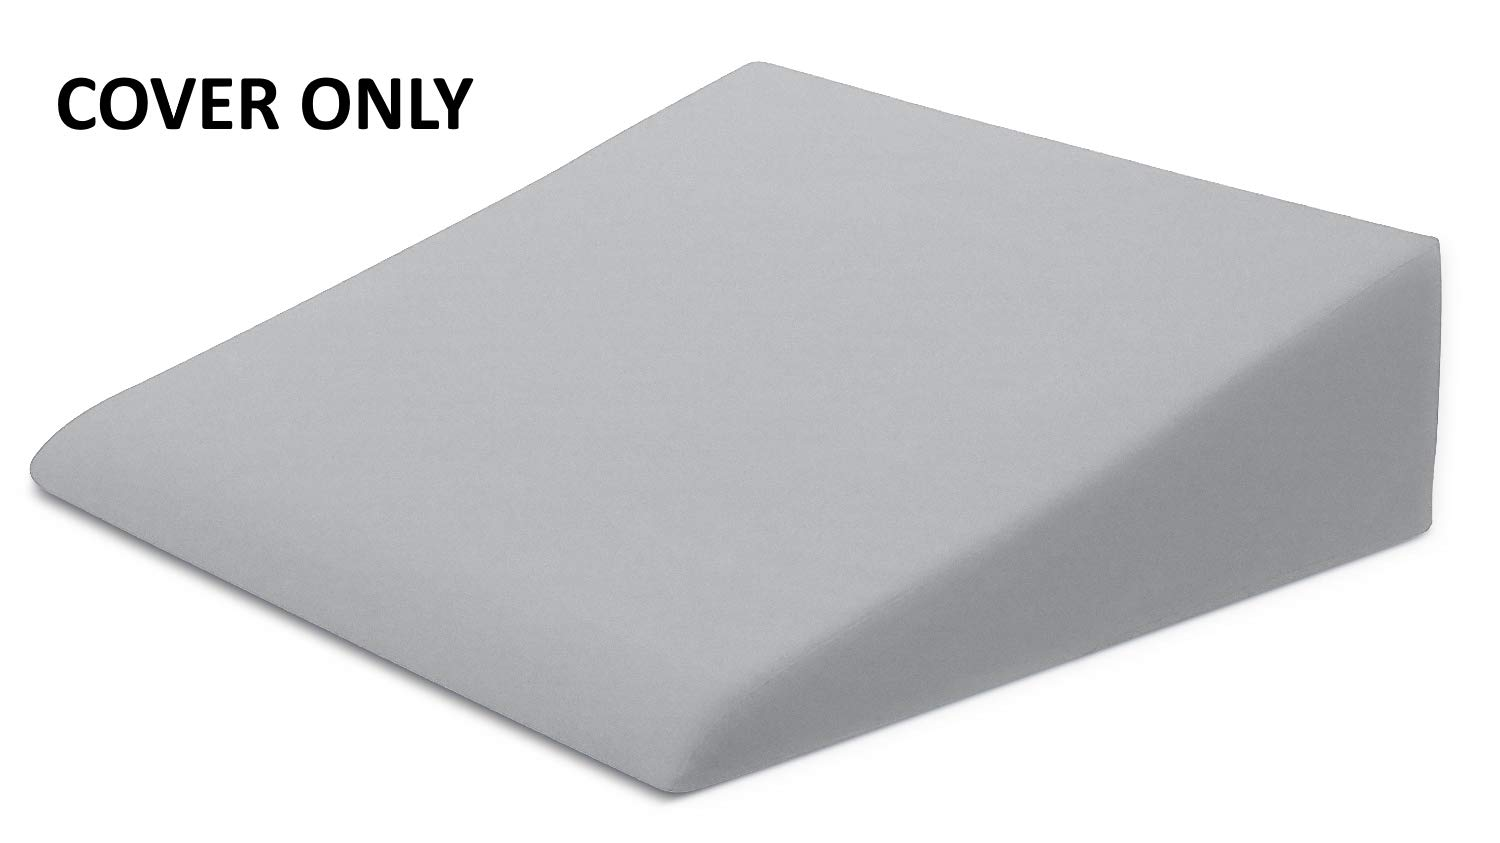 Xtreme Comforts Bed Wedge Pillow Case - Microfiber Cover Designed to Fit Our (27 'x 25'' x 7'') Bed Wedge Pillow (Gray) by Xtreme Comforts